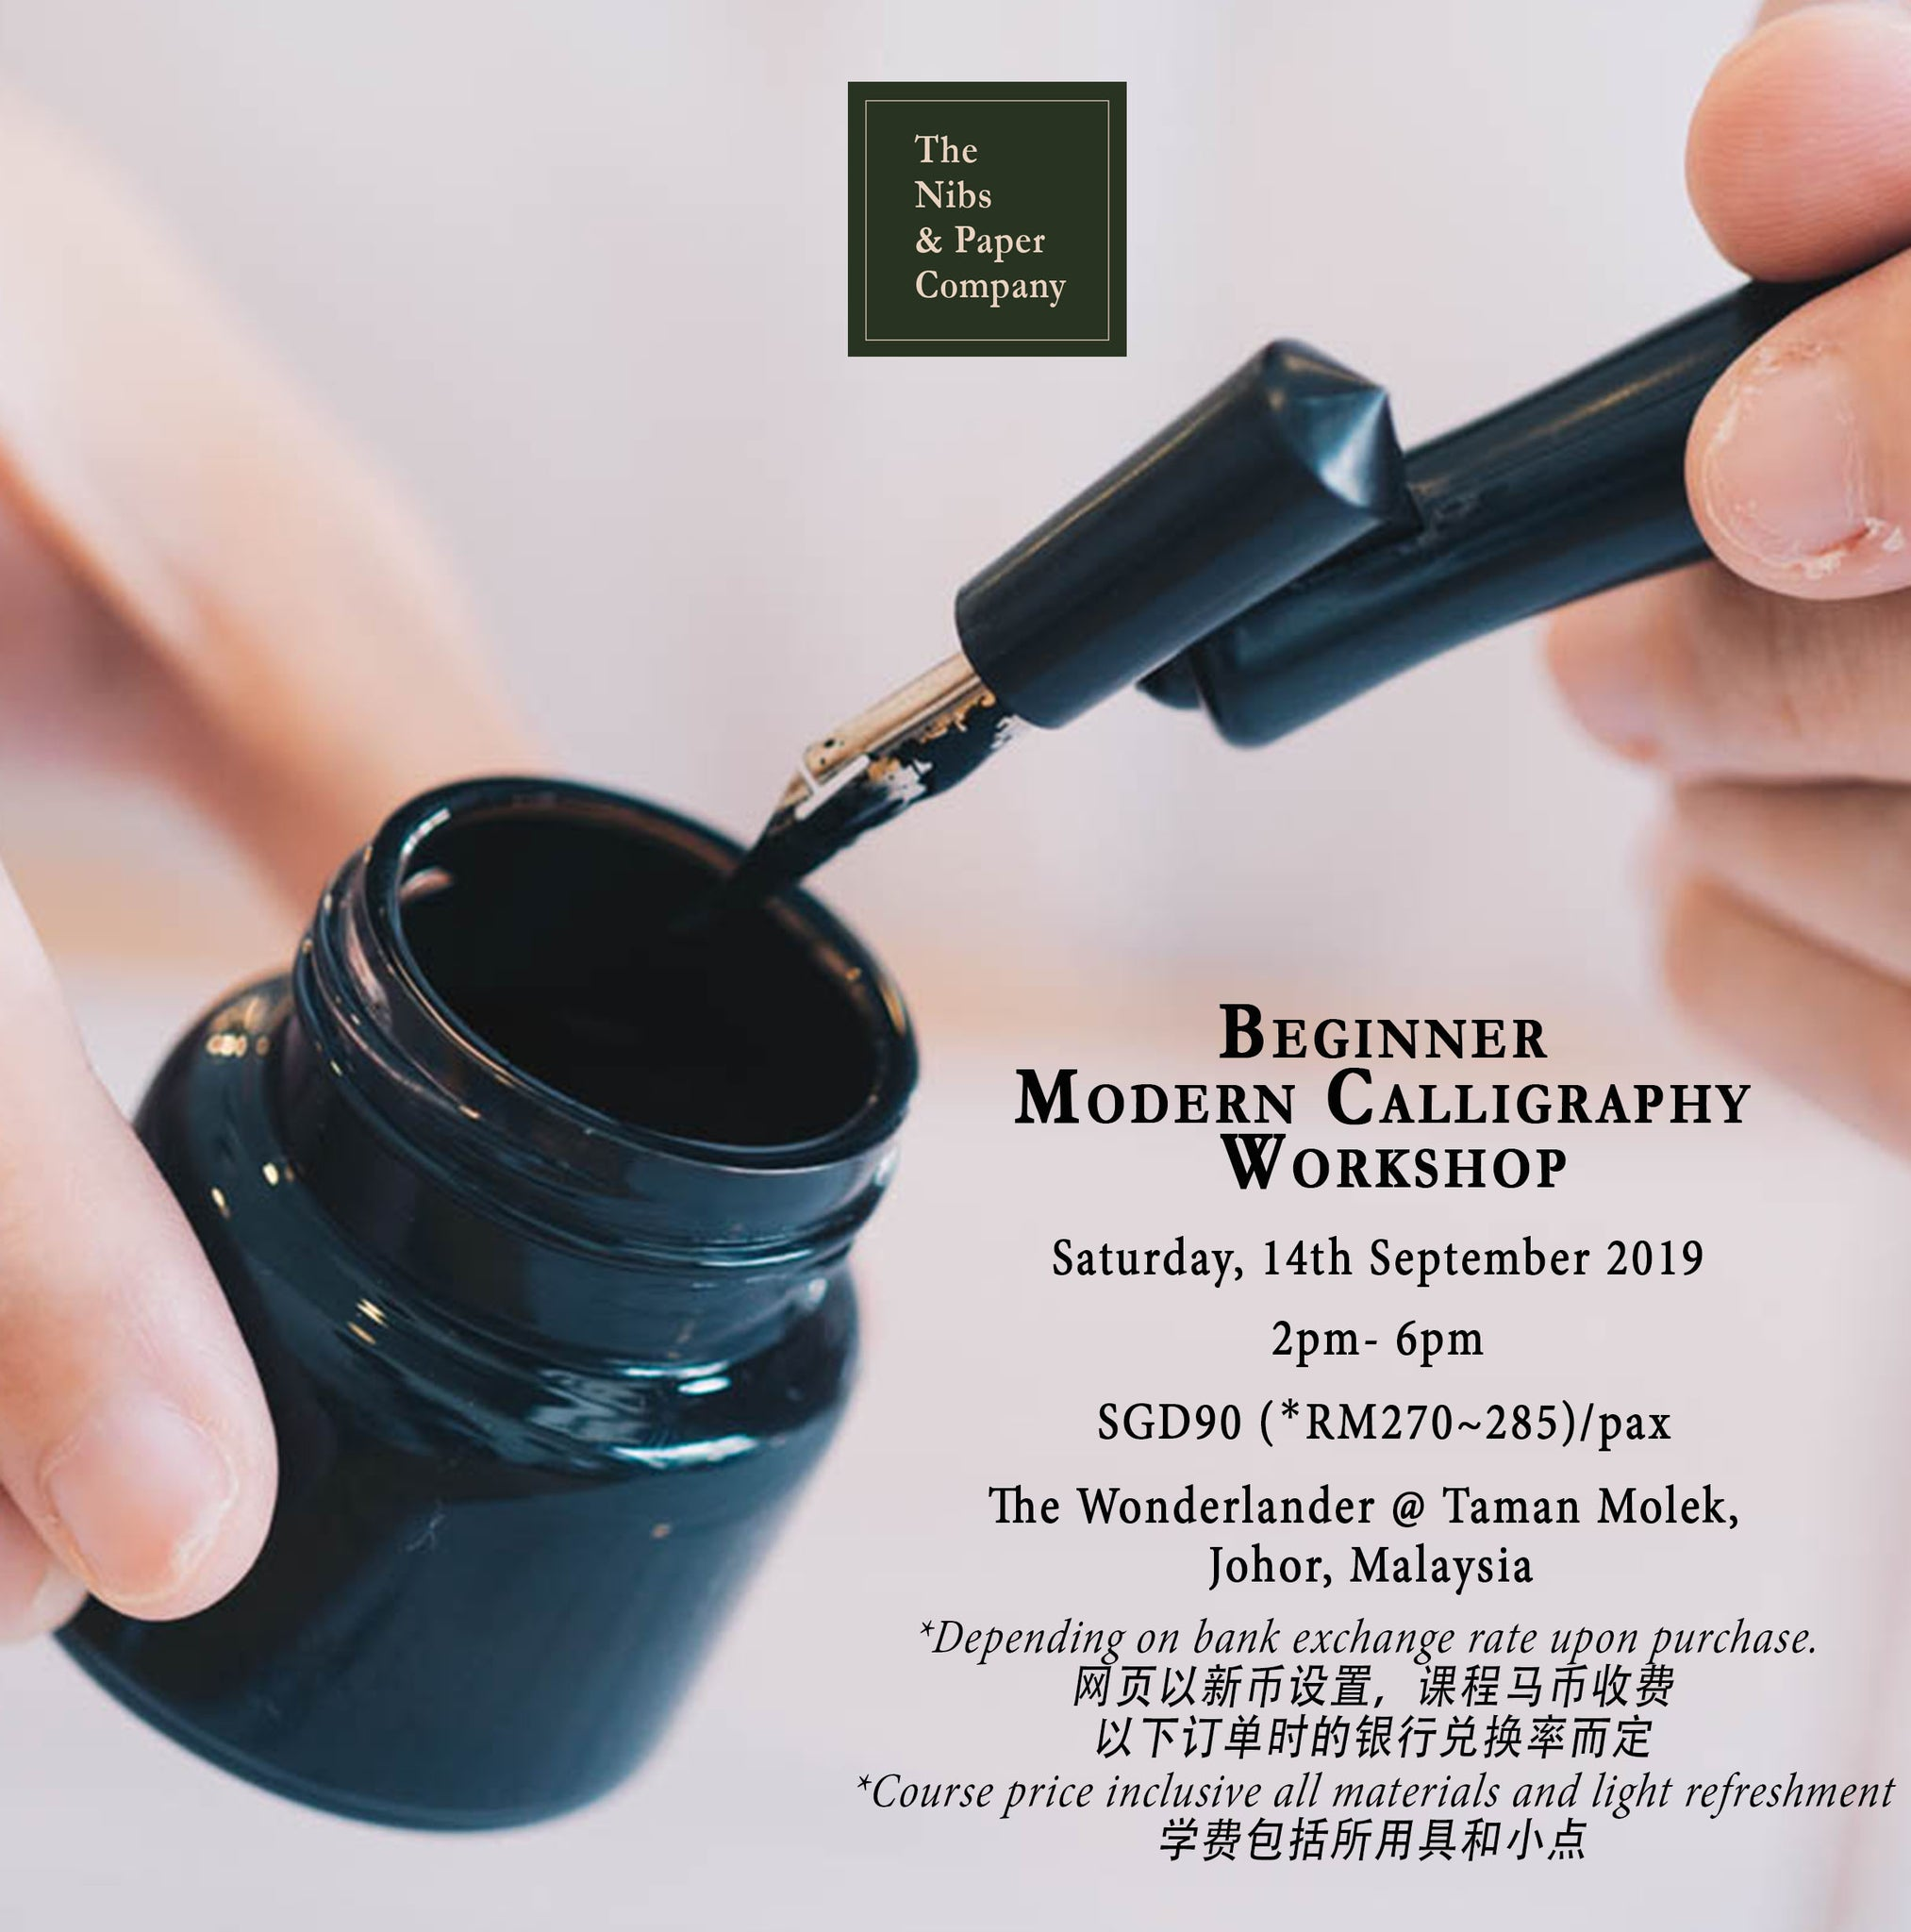 Beginner Modern Calligraphy Workshop - 14th September 2019 - Malaysia